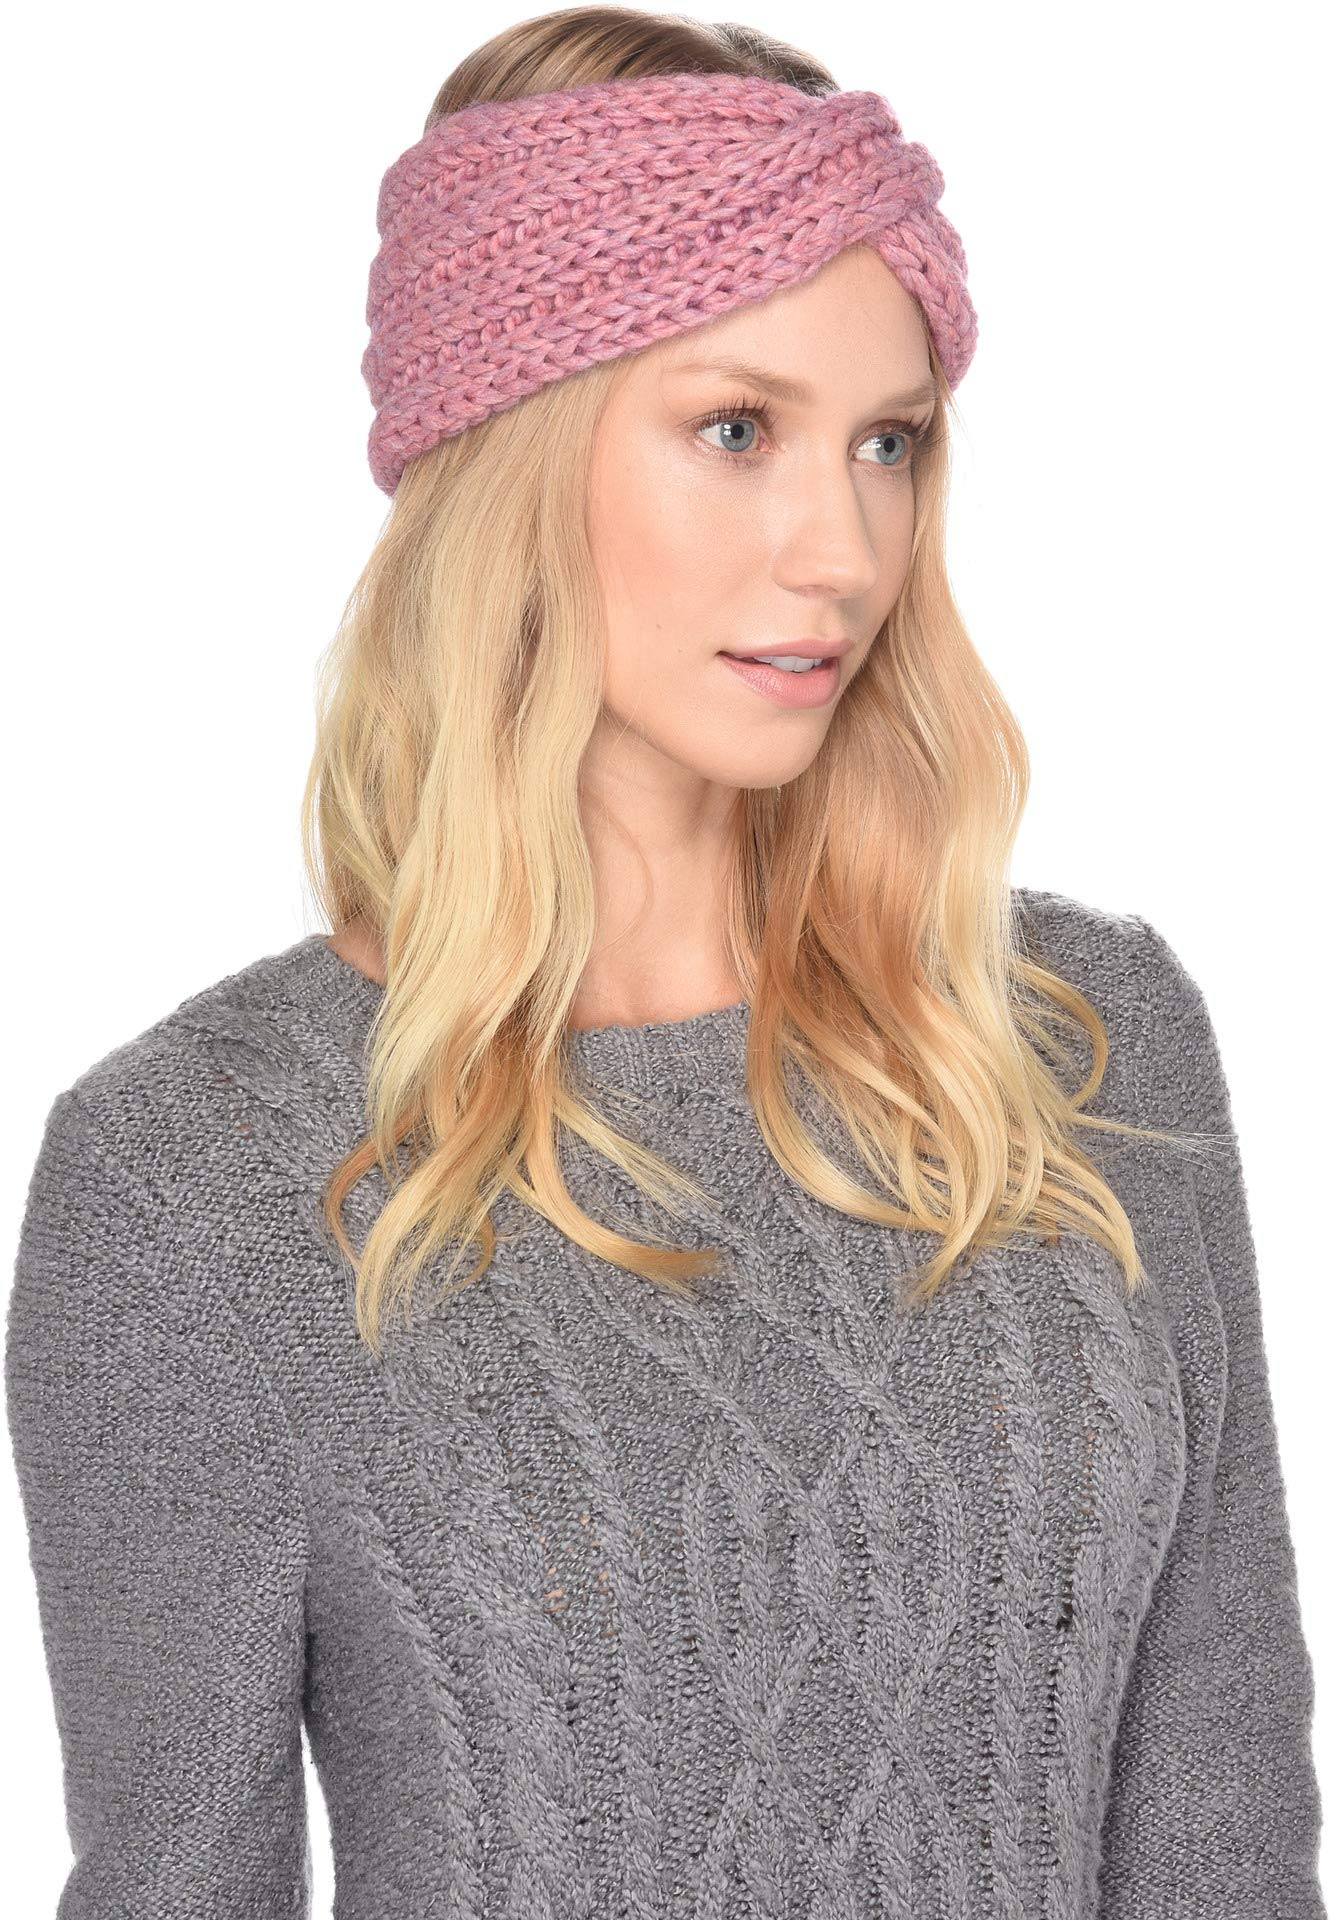 UGG Women's Chunky Knit Headwrap Pink One Size